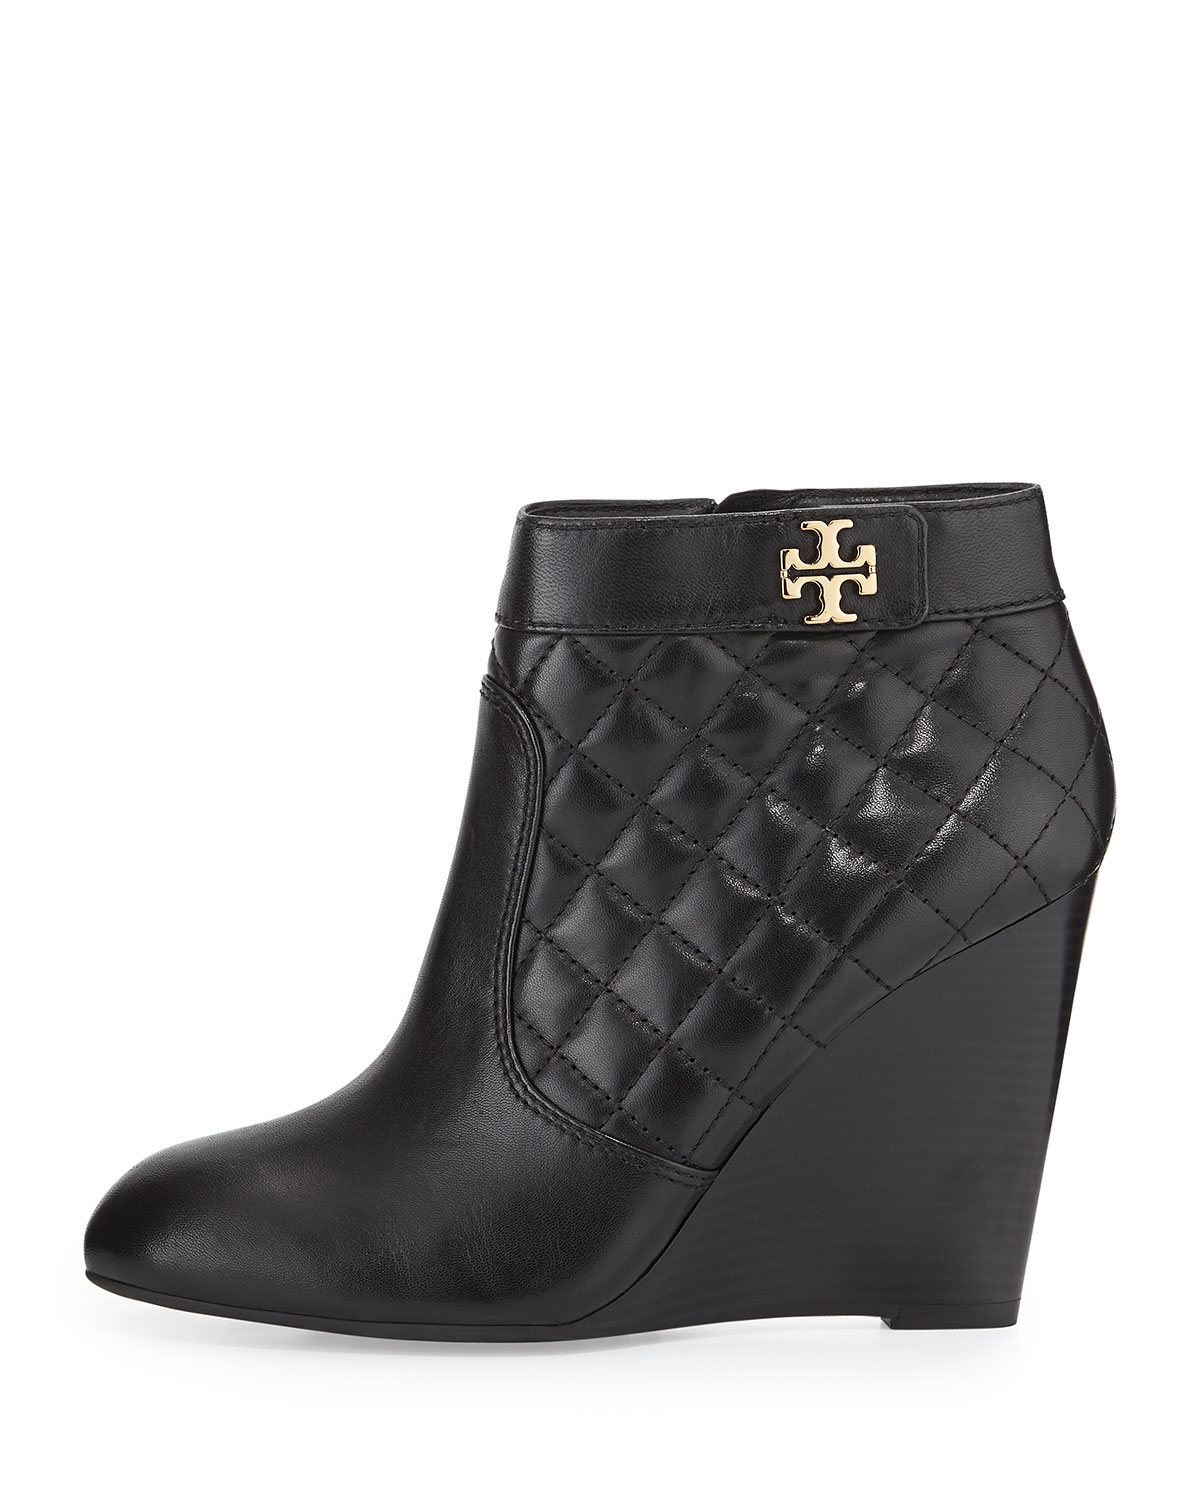 101d9b48d68b27 Lyst - Tory Burch Leila Quilted Wedge Bootie in Black